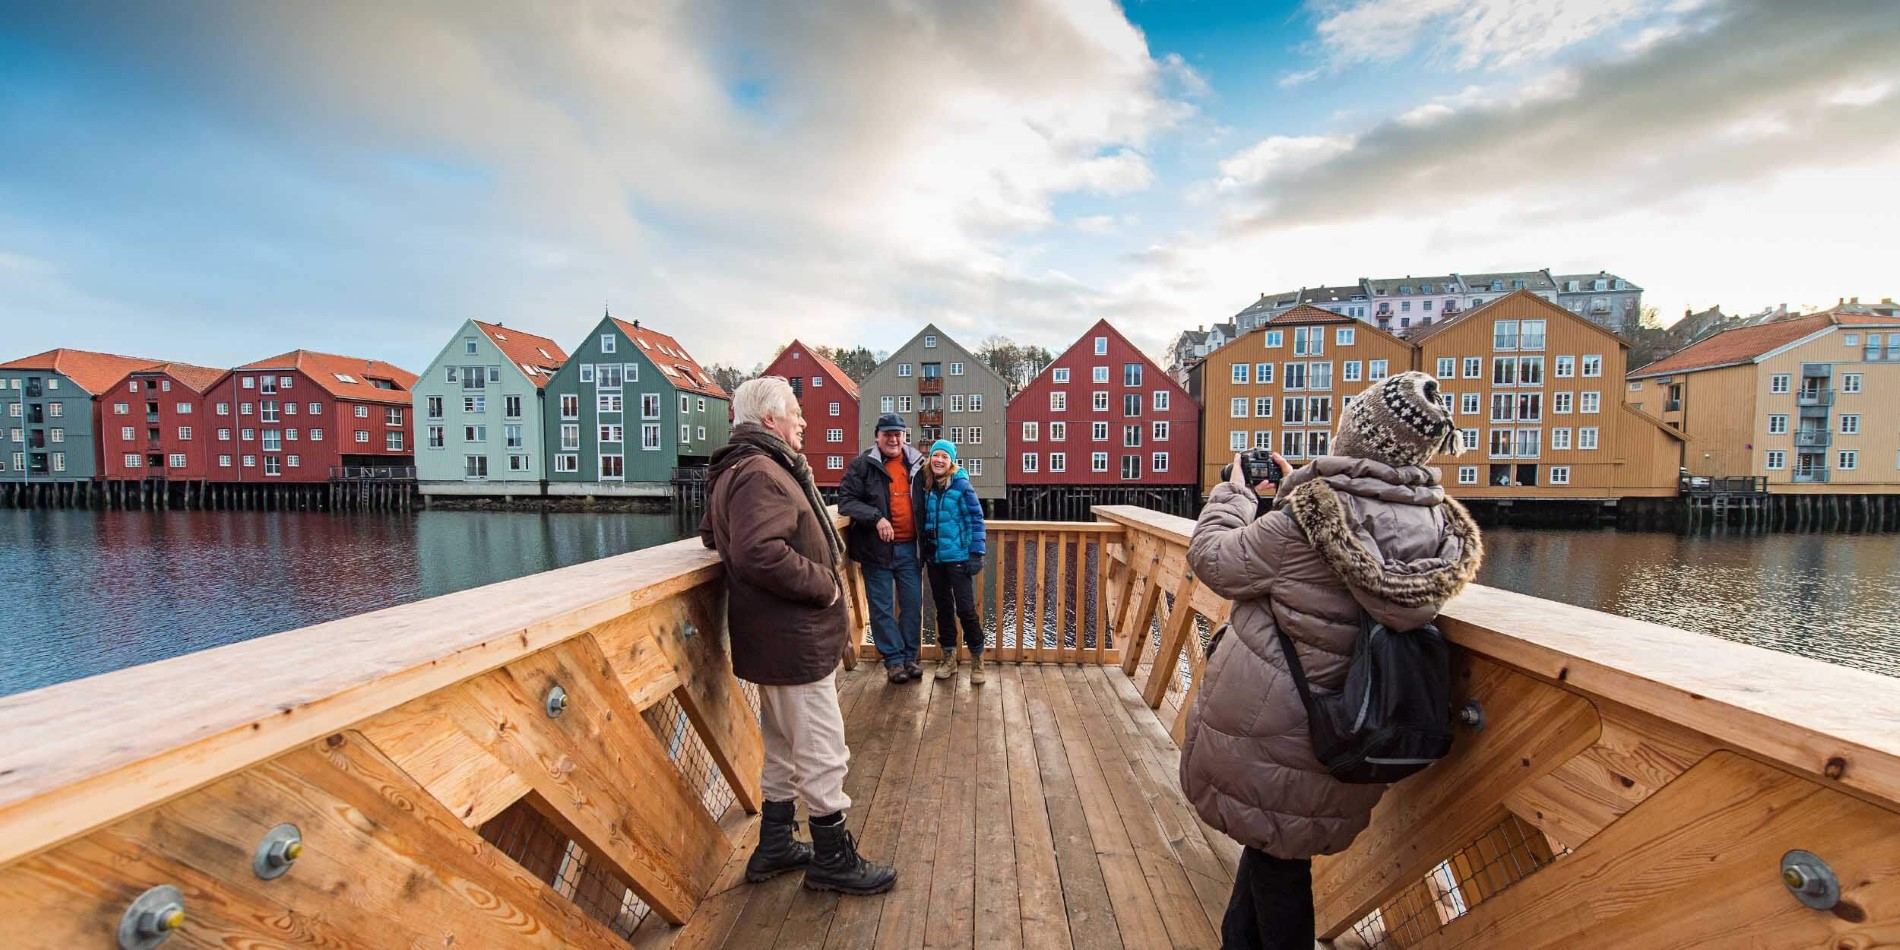 Old storehouses along Nidelva, the river in Trondheim